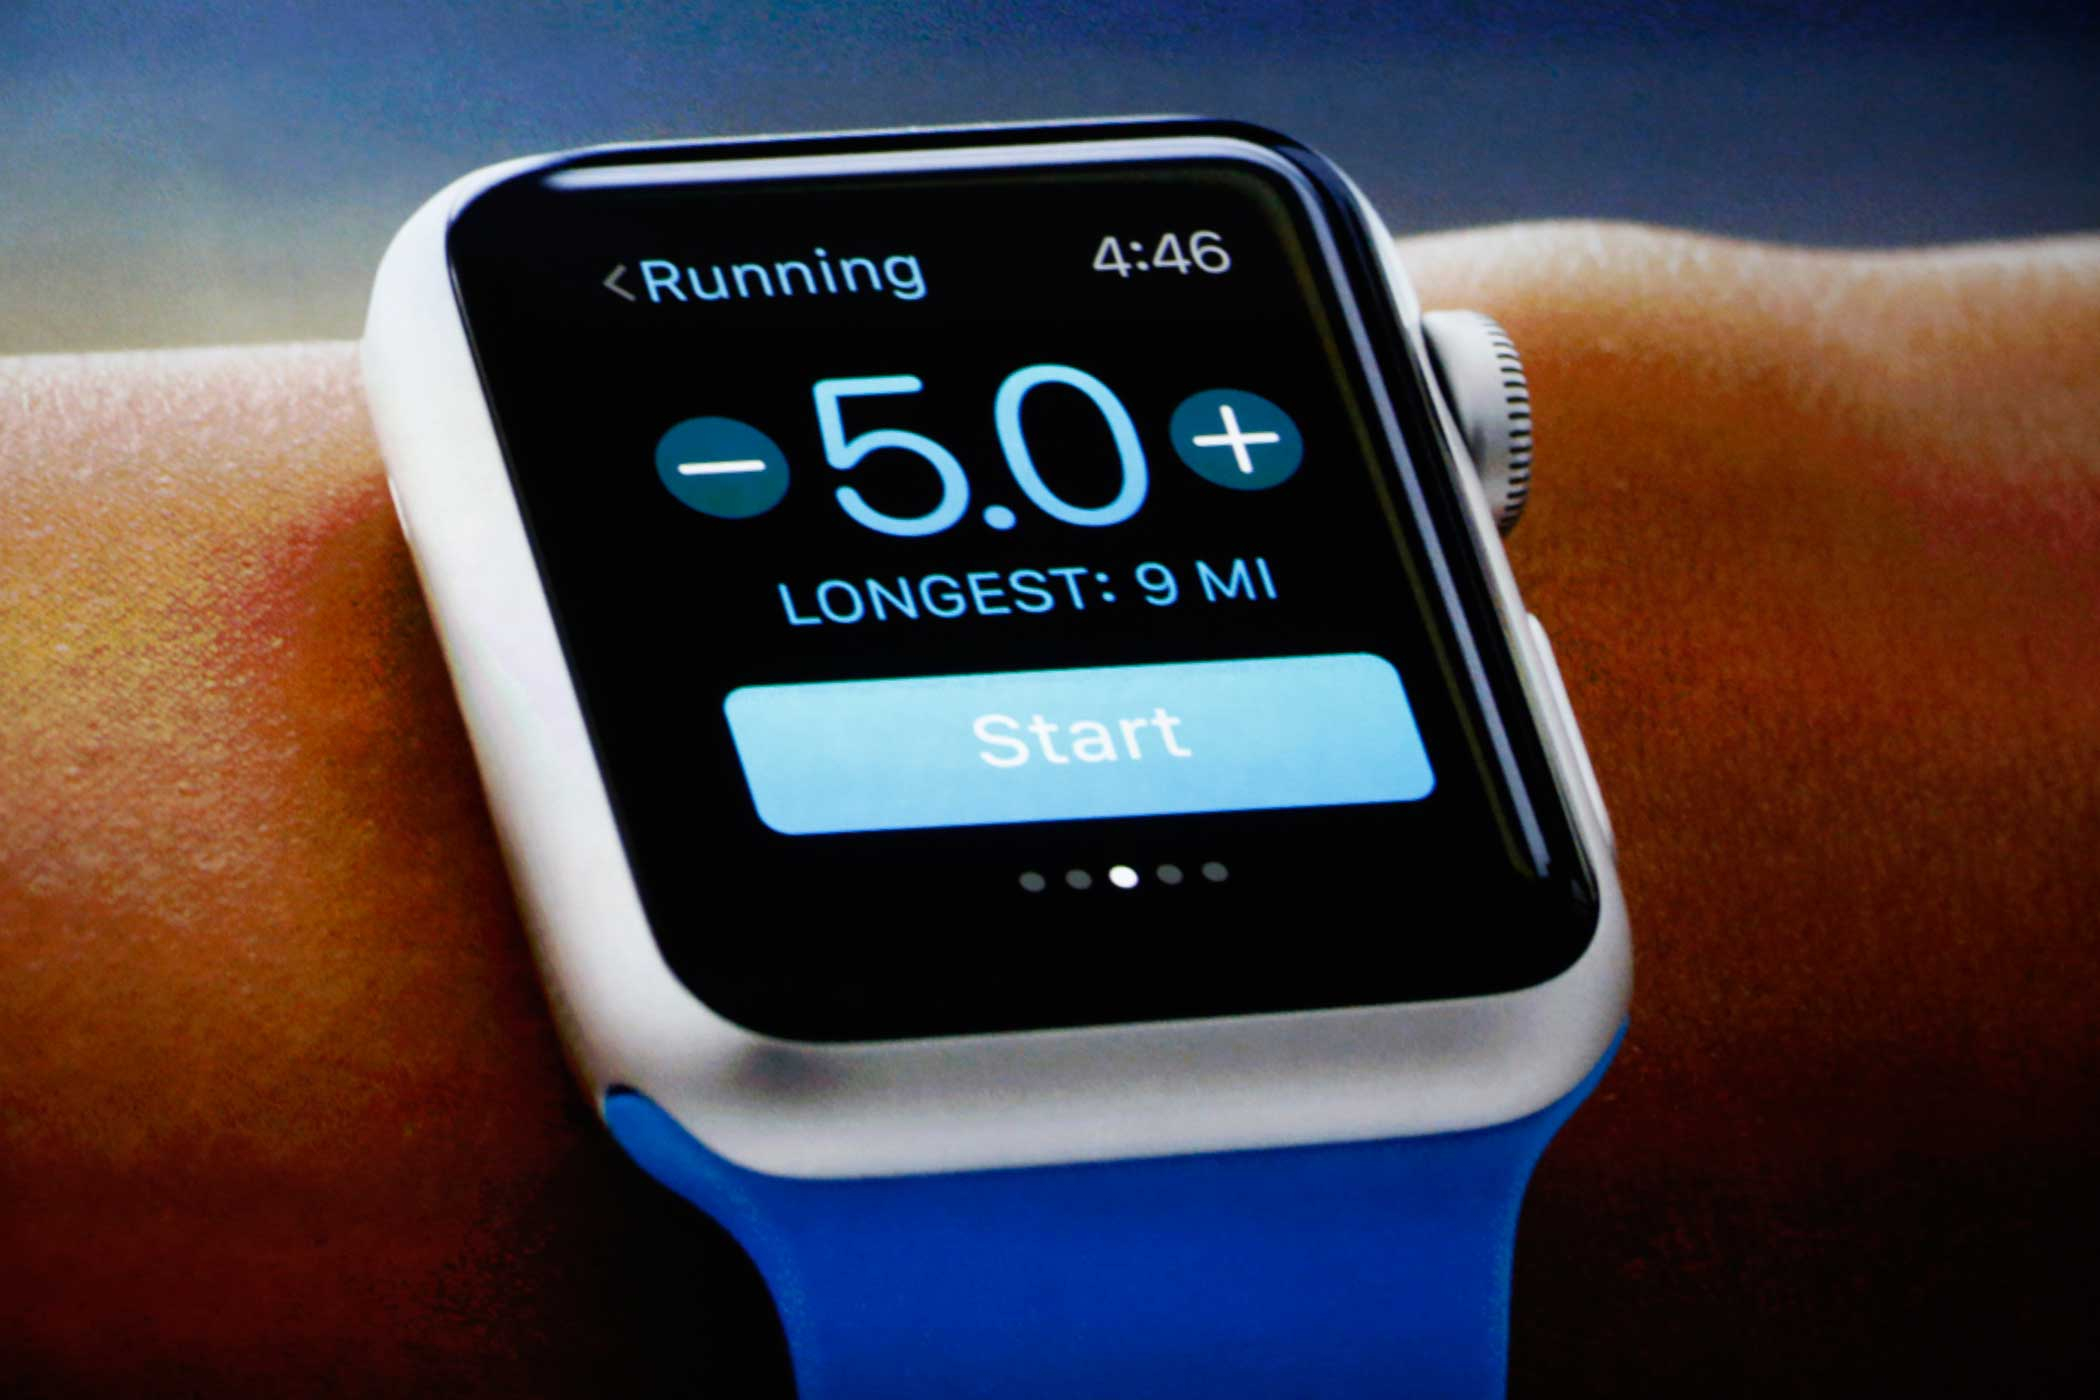 Apple's fitness app, one of the device's main selling points, tracks runs, walks and bike rides.